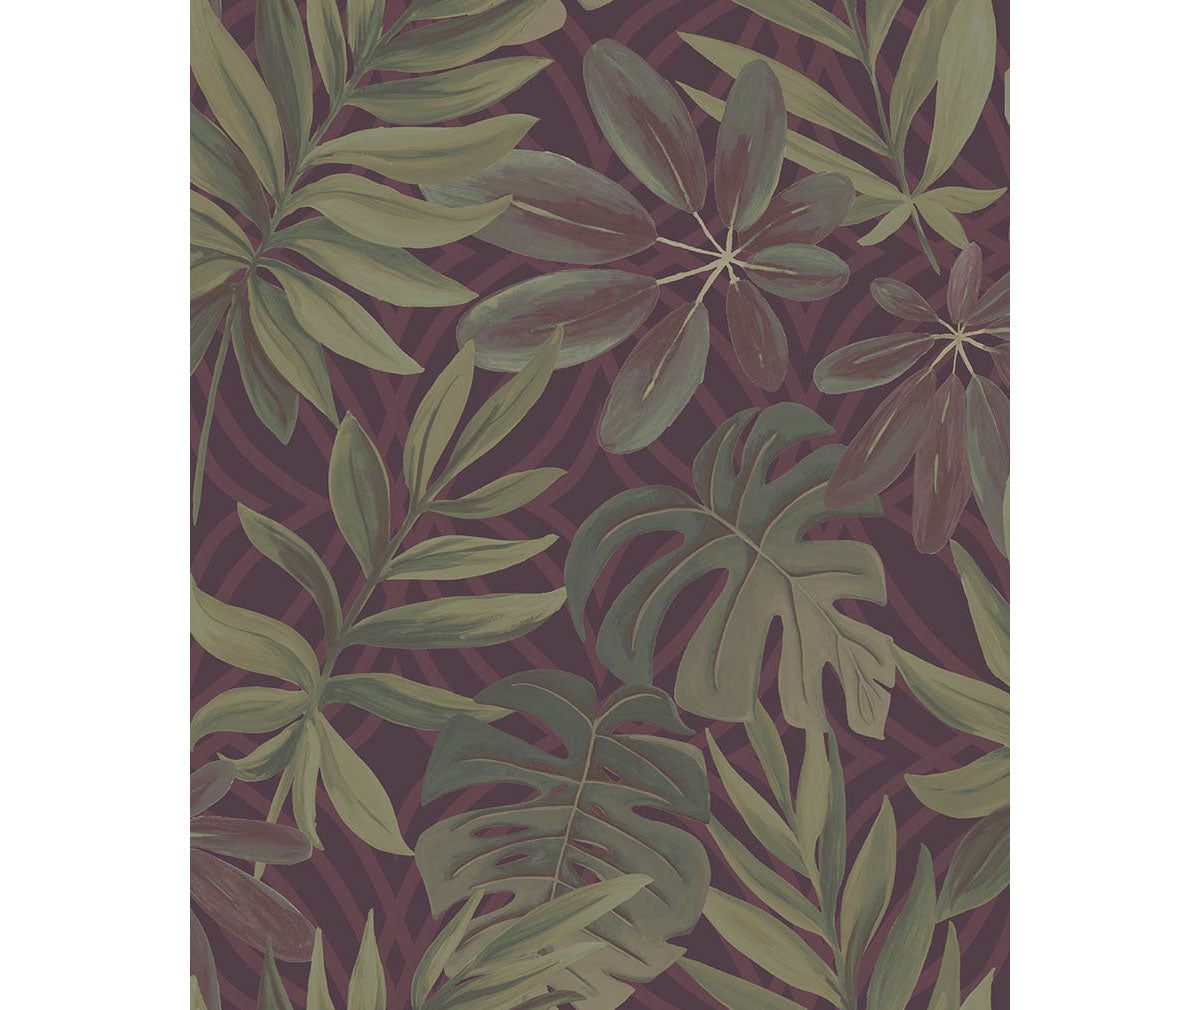 Nocturnum Maroon Leaf Wallpaper available at Barrydowne Paint